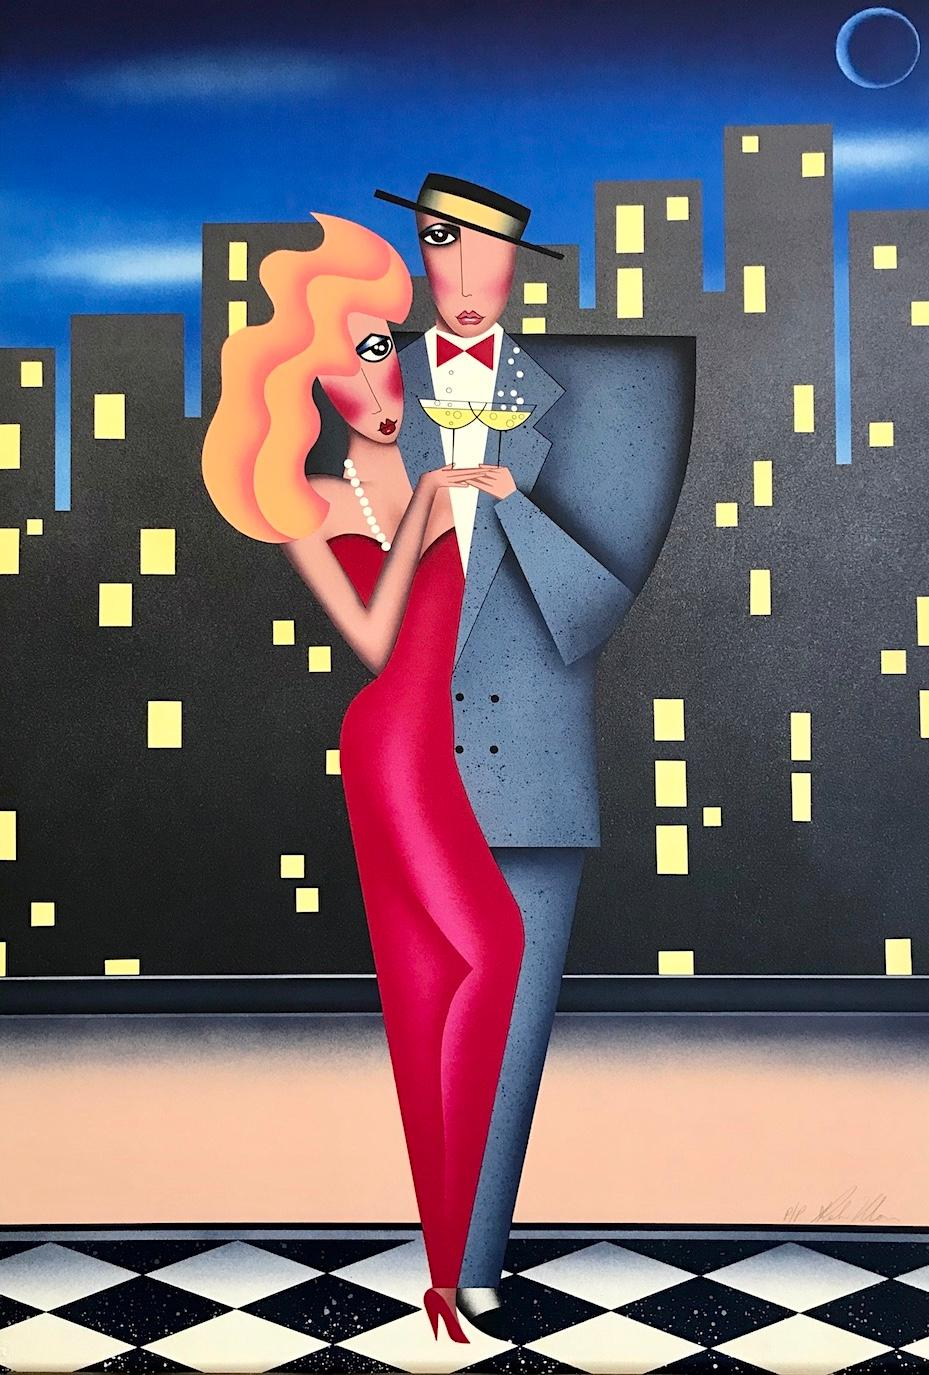 CITY LIGHTS Signed Lithograph, City Couple Portrait, Checkered Floor, Champagne